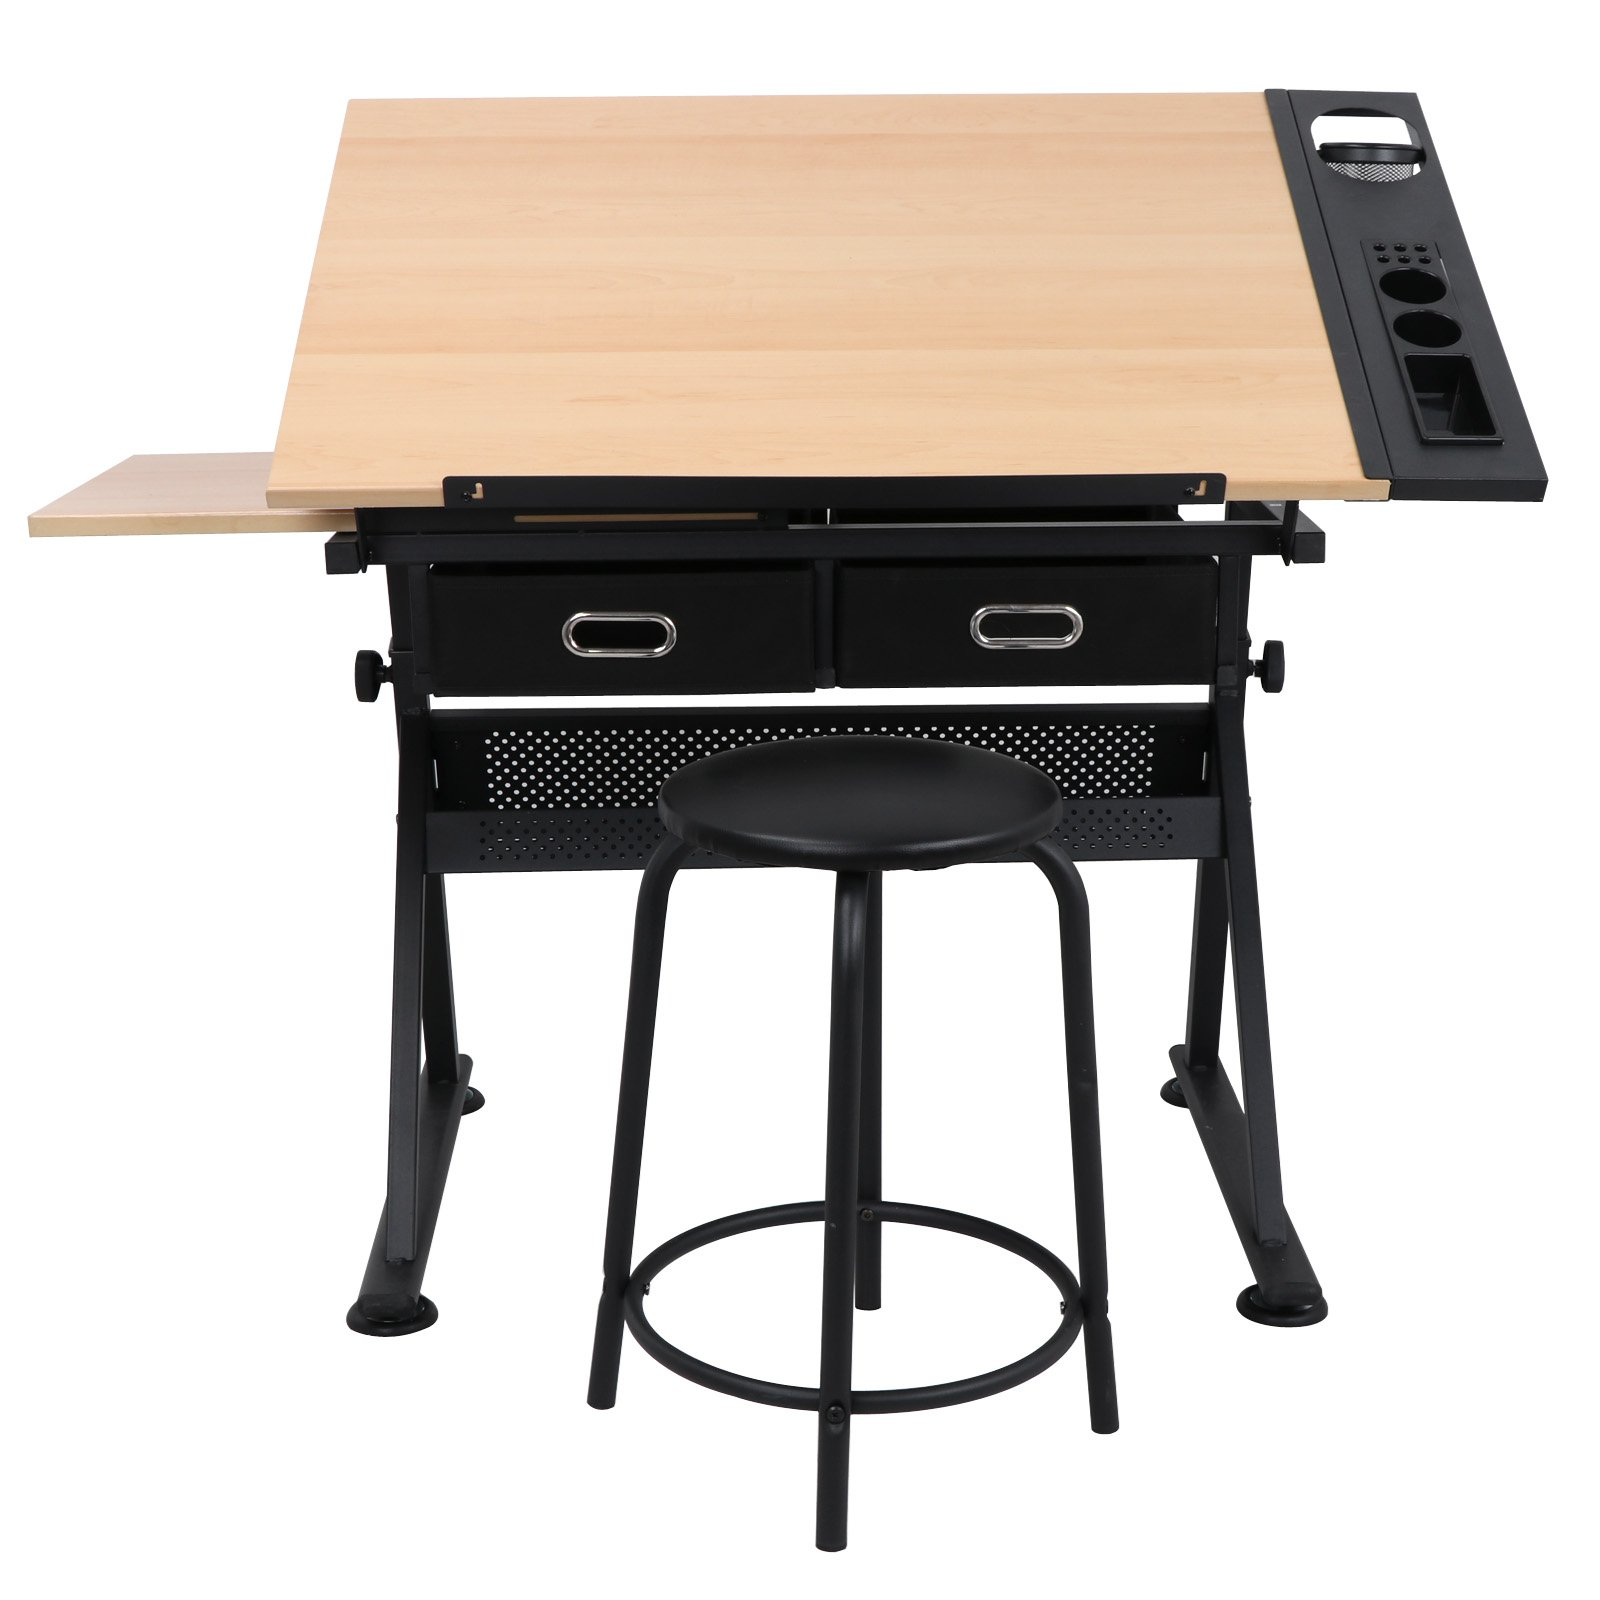 JupiterForce Adjustable Drafting Table with Storage Drawer and Stool for Reading Writing,Natural